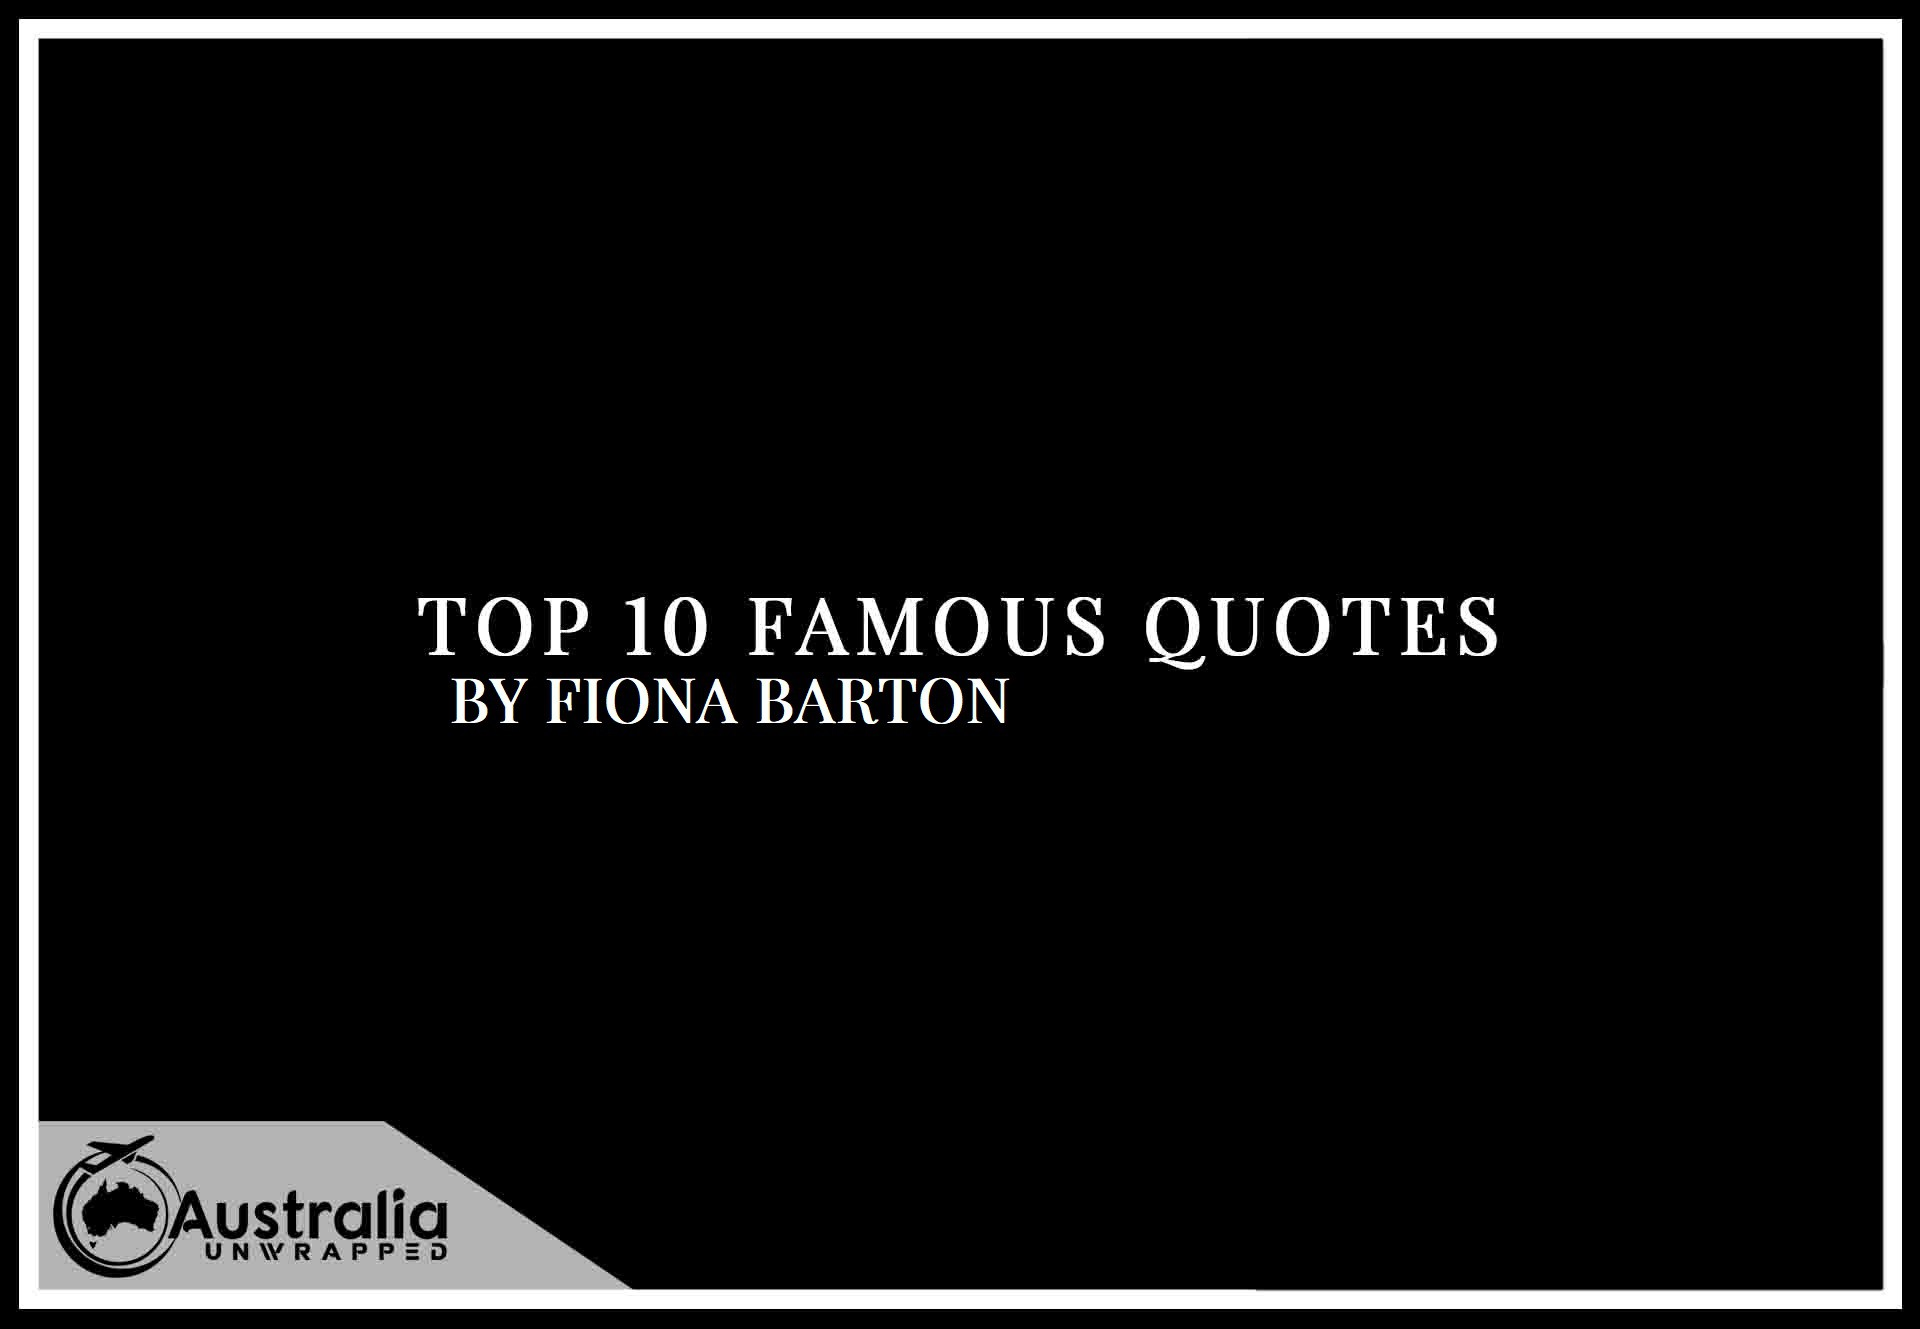 Top 10 Famous Quotes by Author Fiona Barton